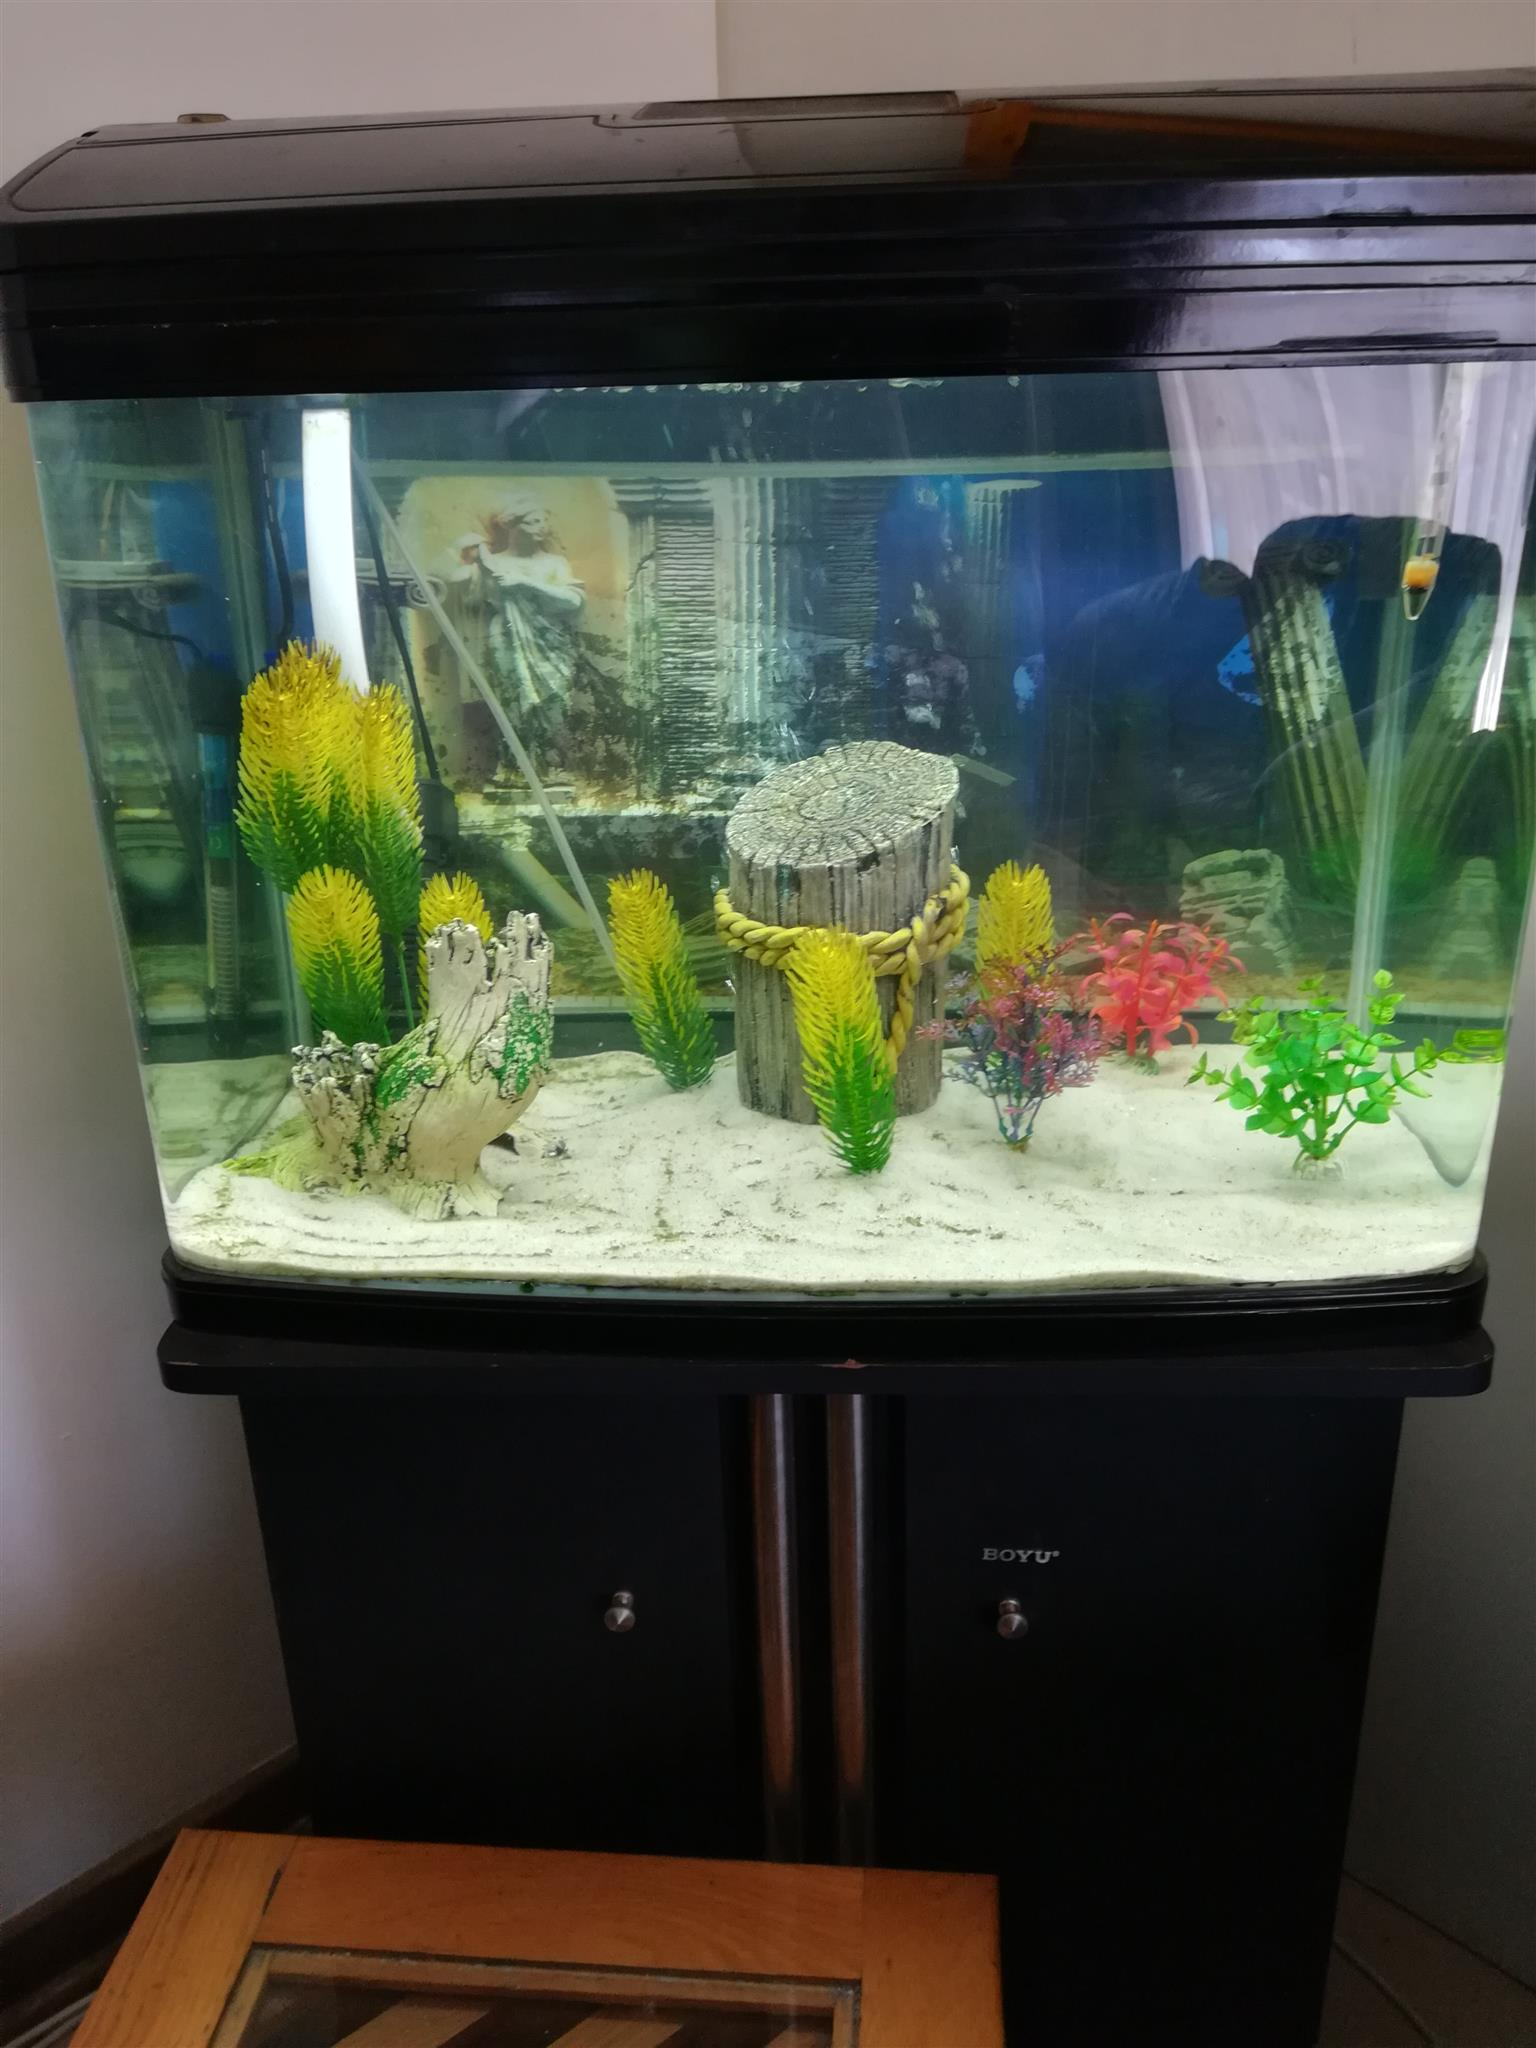 aquarium light lights passes threads physics energy water in air change forums as through